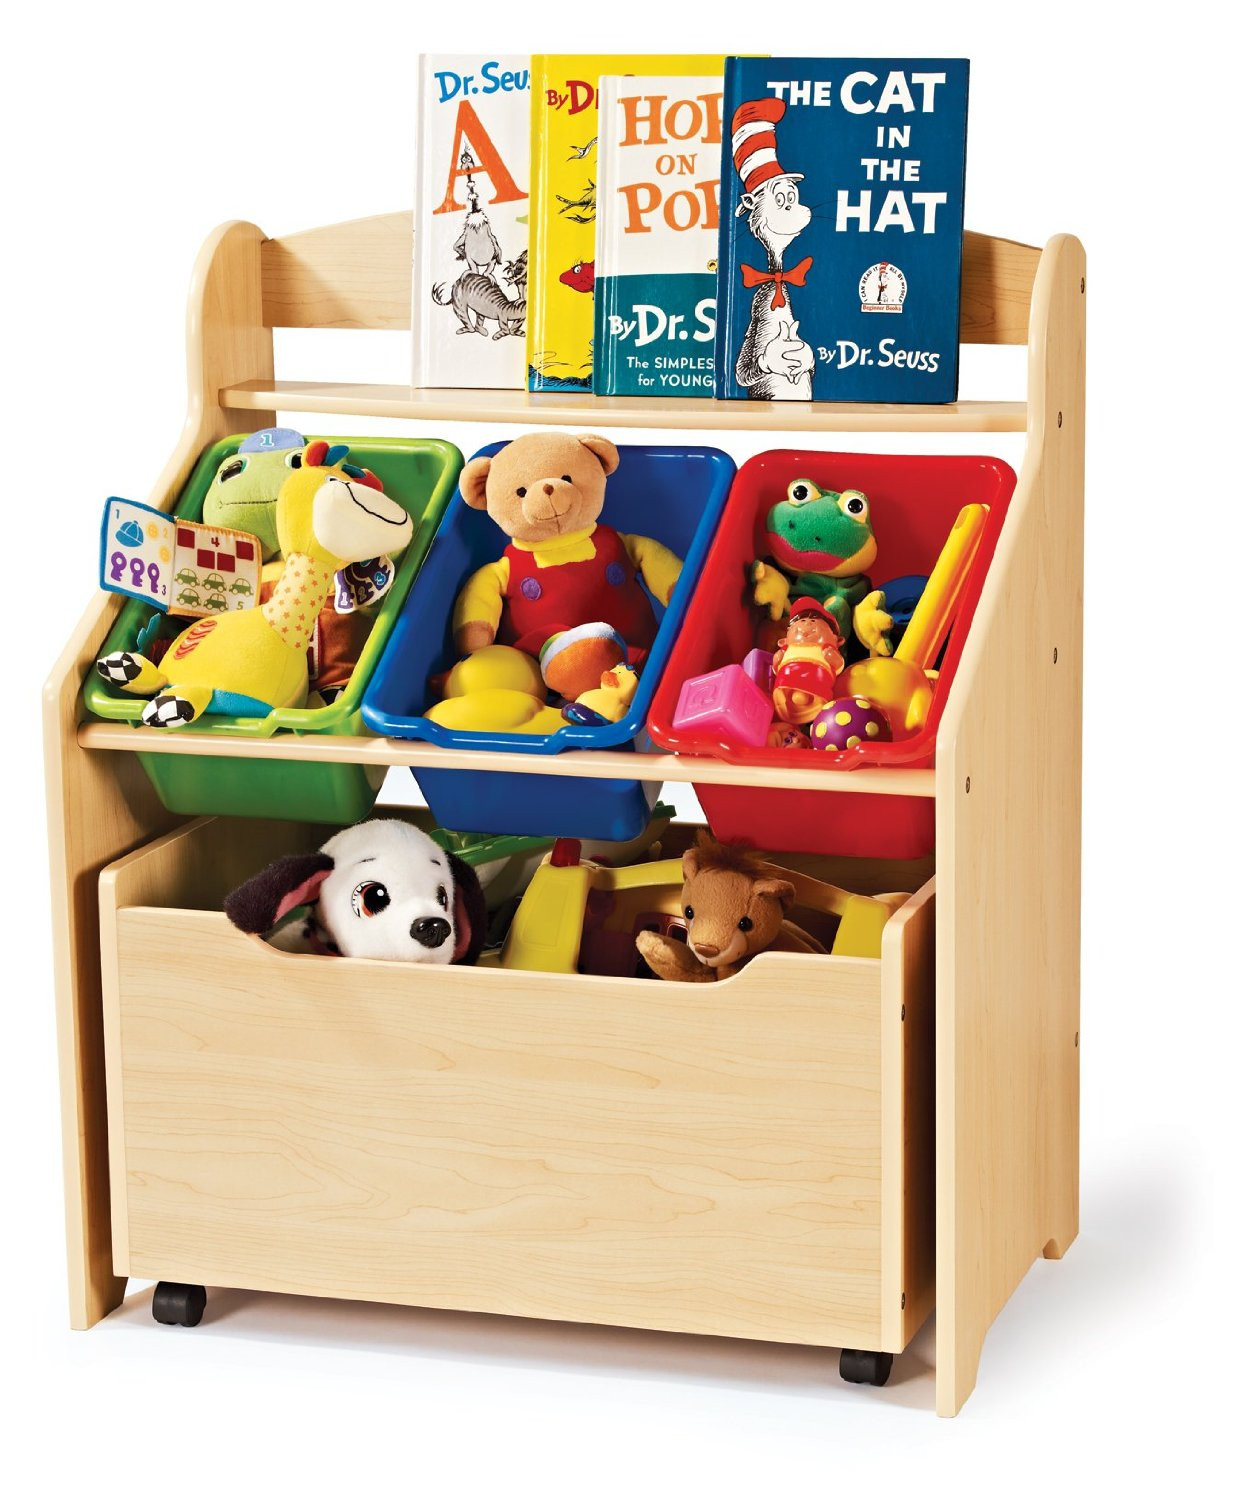 Kids Toys Storage  10 Types of Toy Organizers for Kids Bedrooms and Playrooms